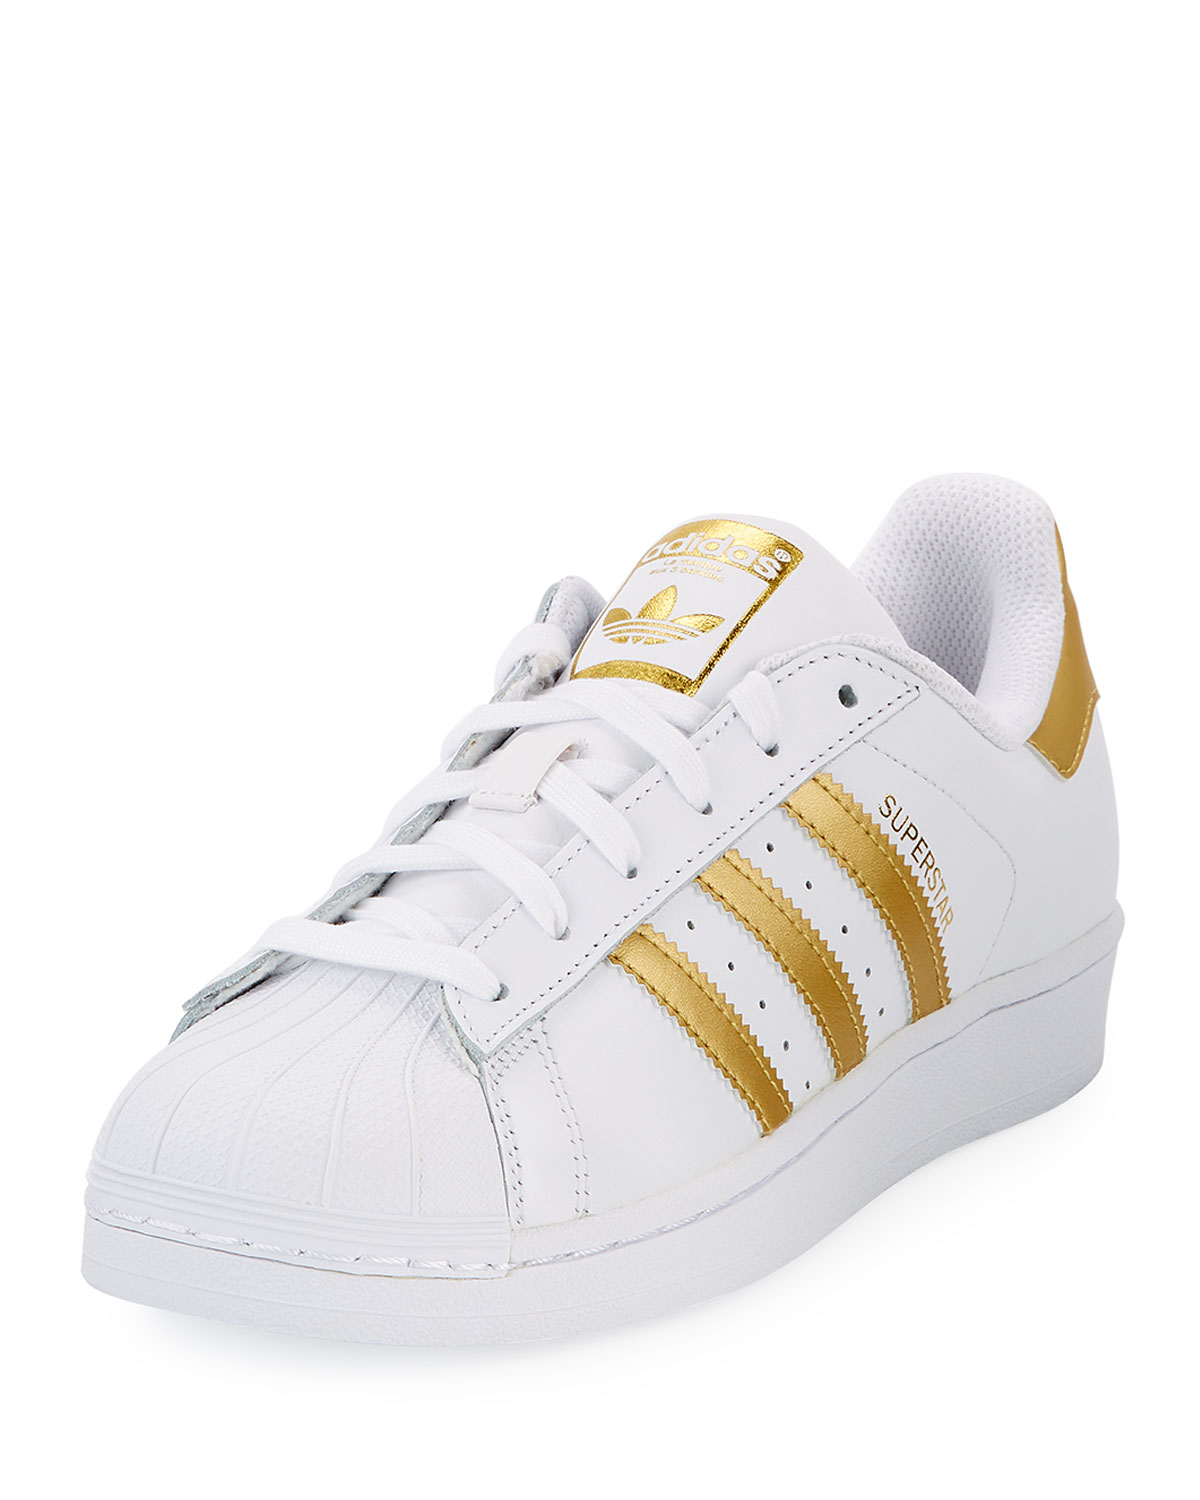 53bef66f5458a Adidas Superstar Original Fashion Sneaker